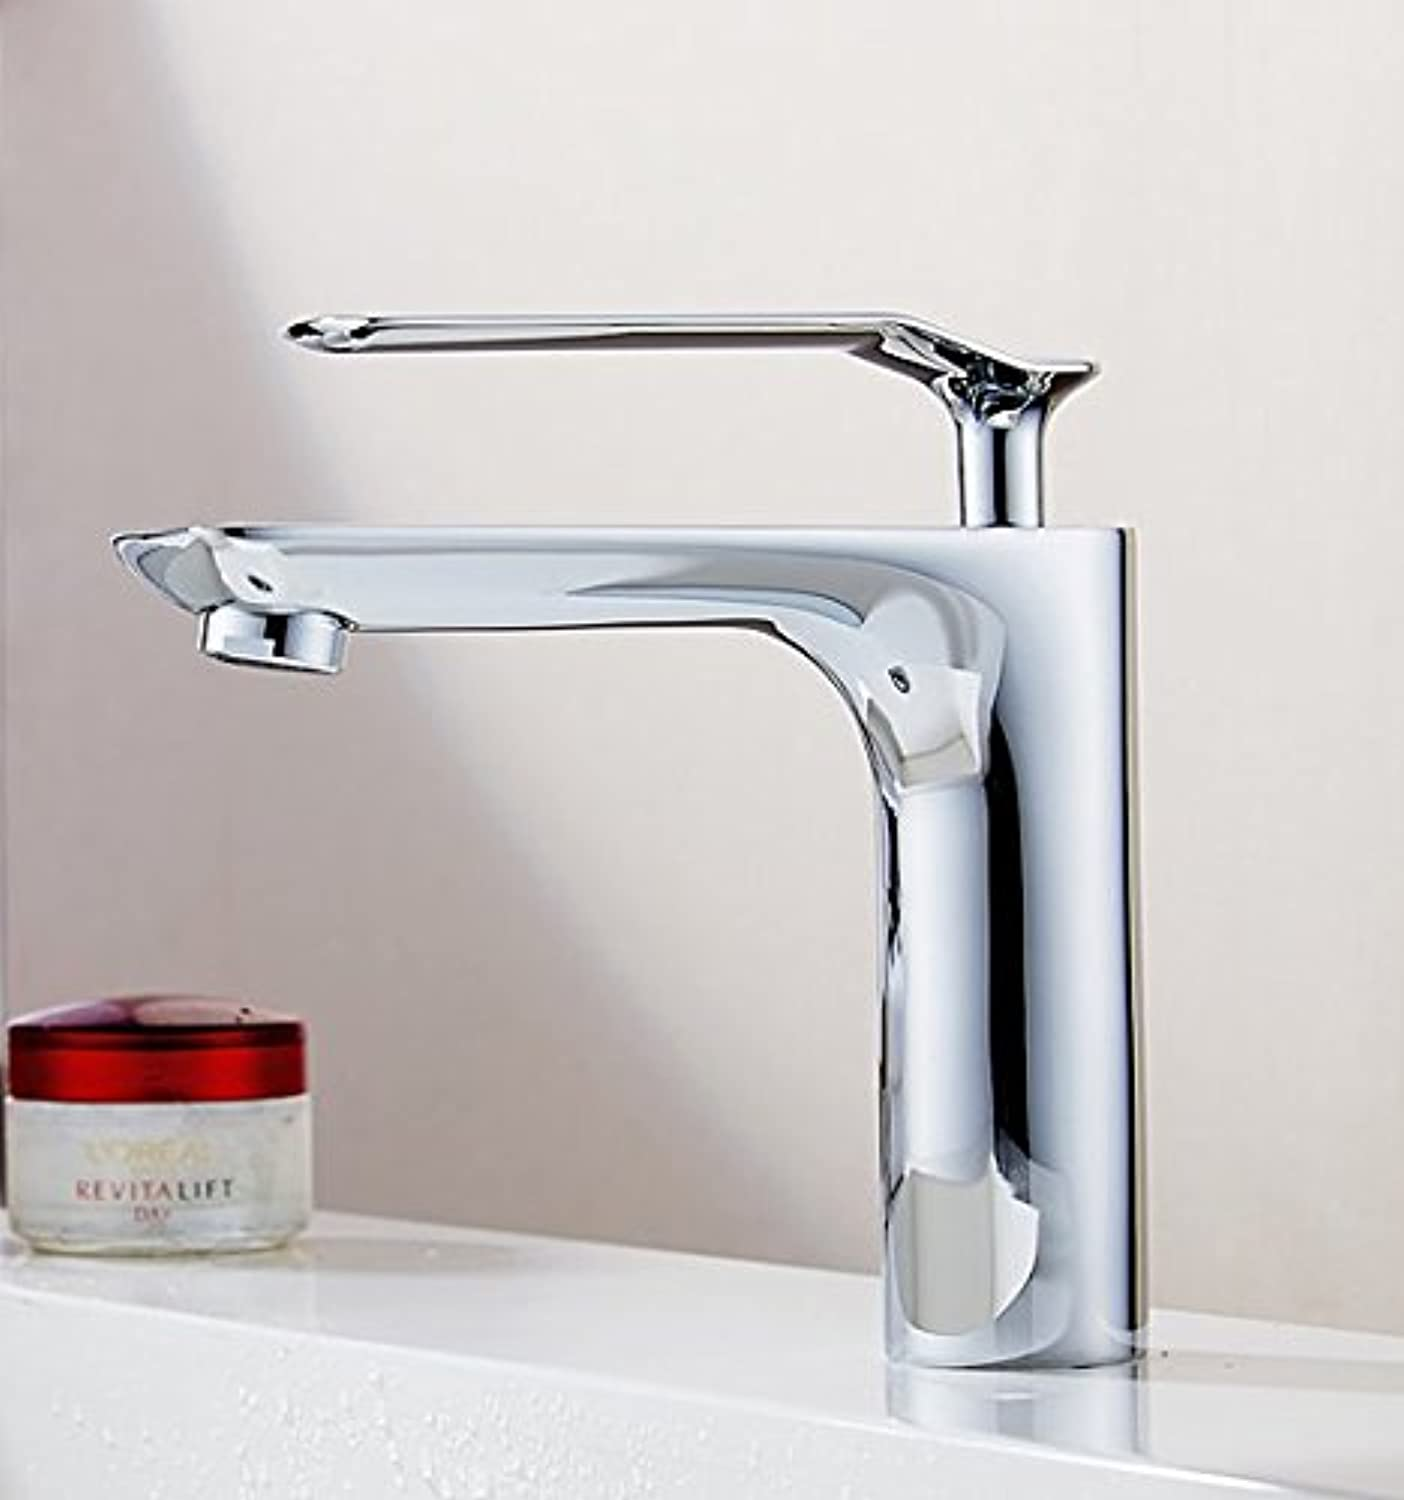 Diongrdk All Copper Single Hole European Basin Basin Faucet Cold and Hot Faucet Single Bath Single Bath Basin